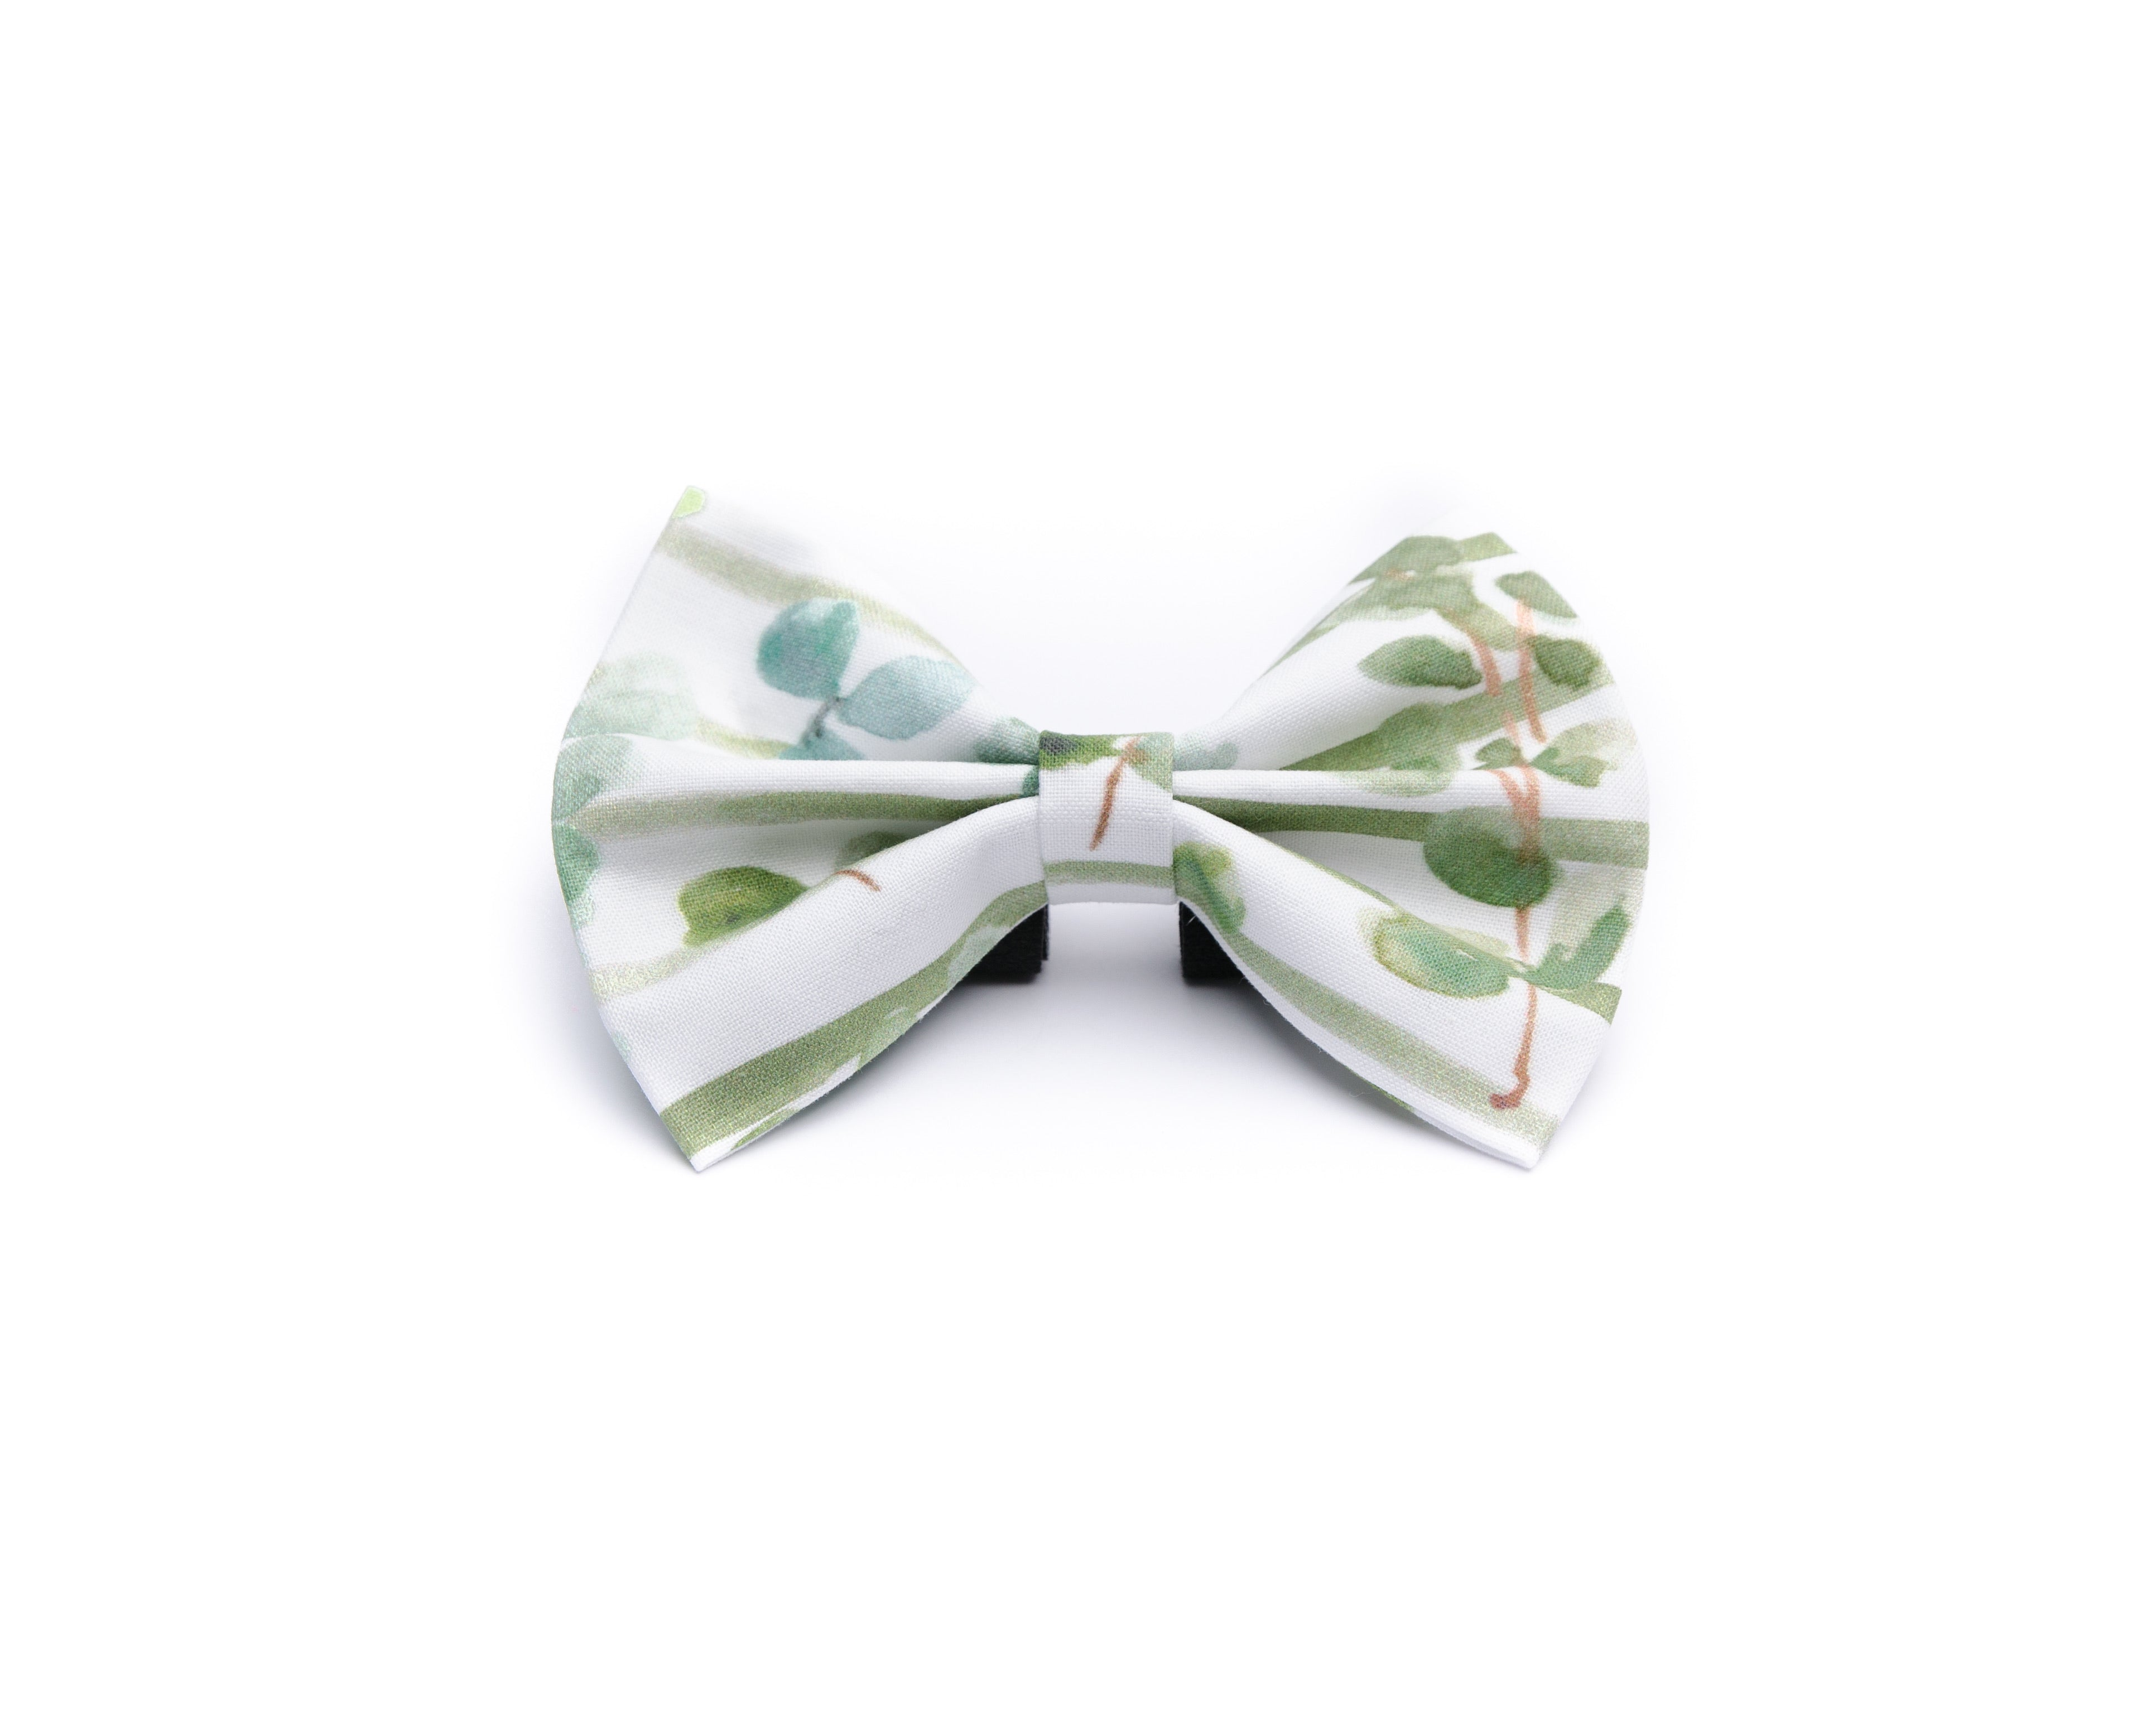 Ain't over till it's clover - reverse side - Bowtie & Sailor bow NEW.